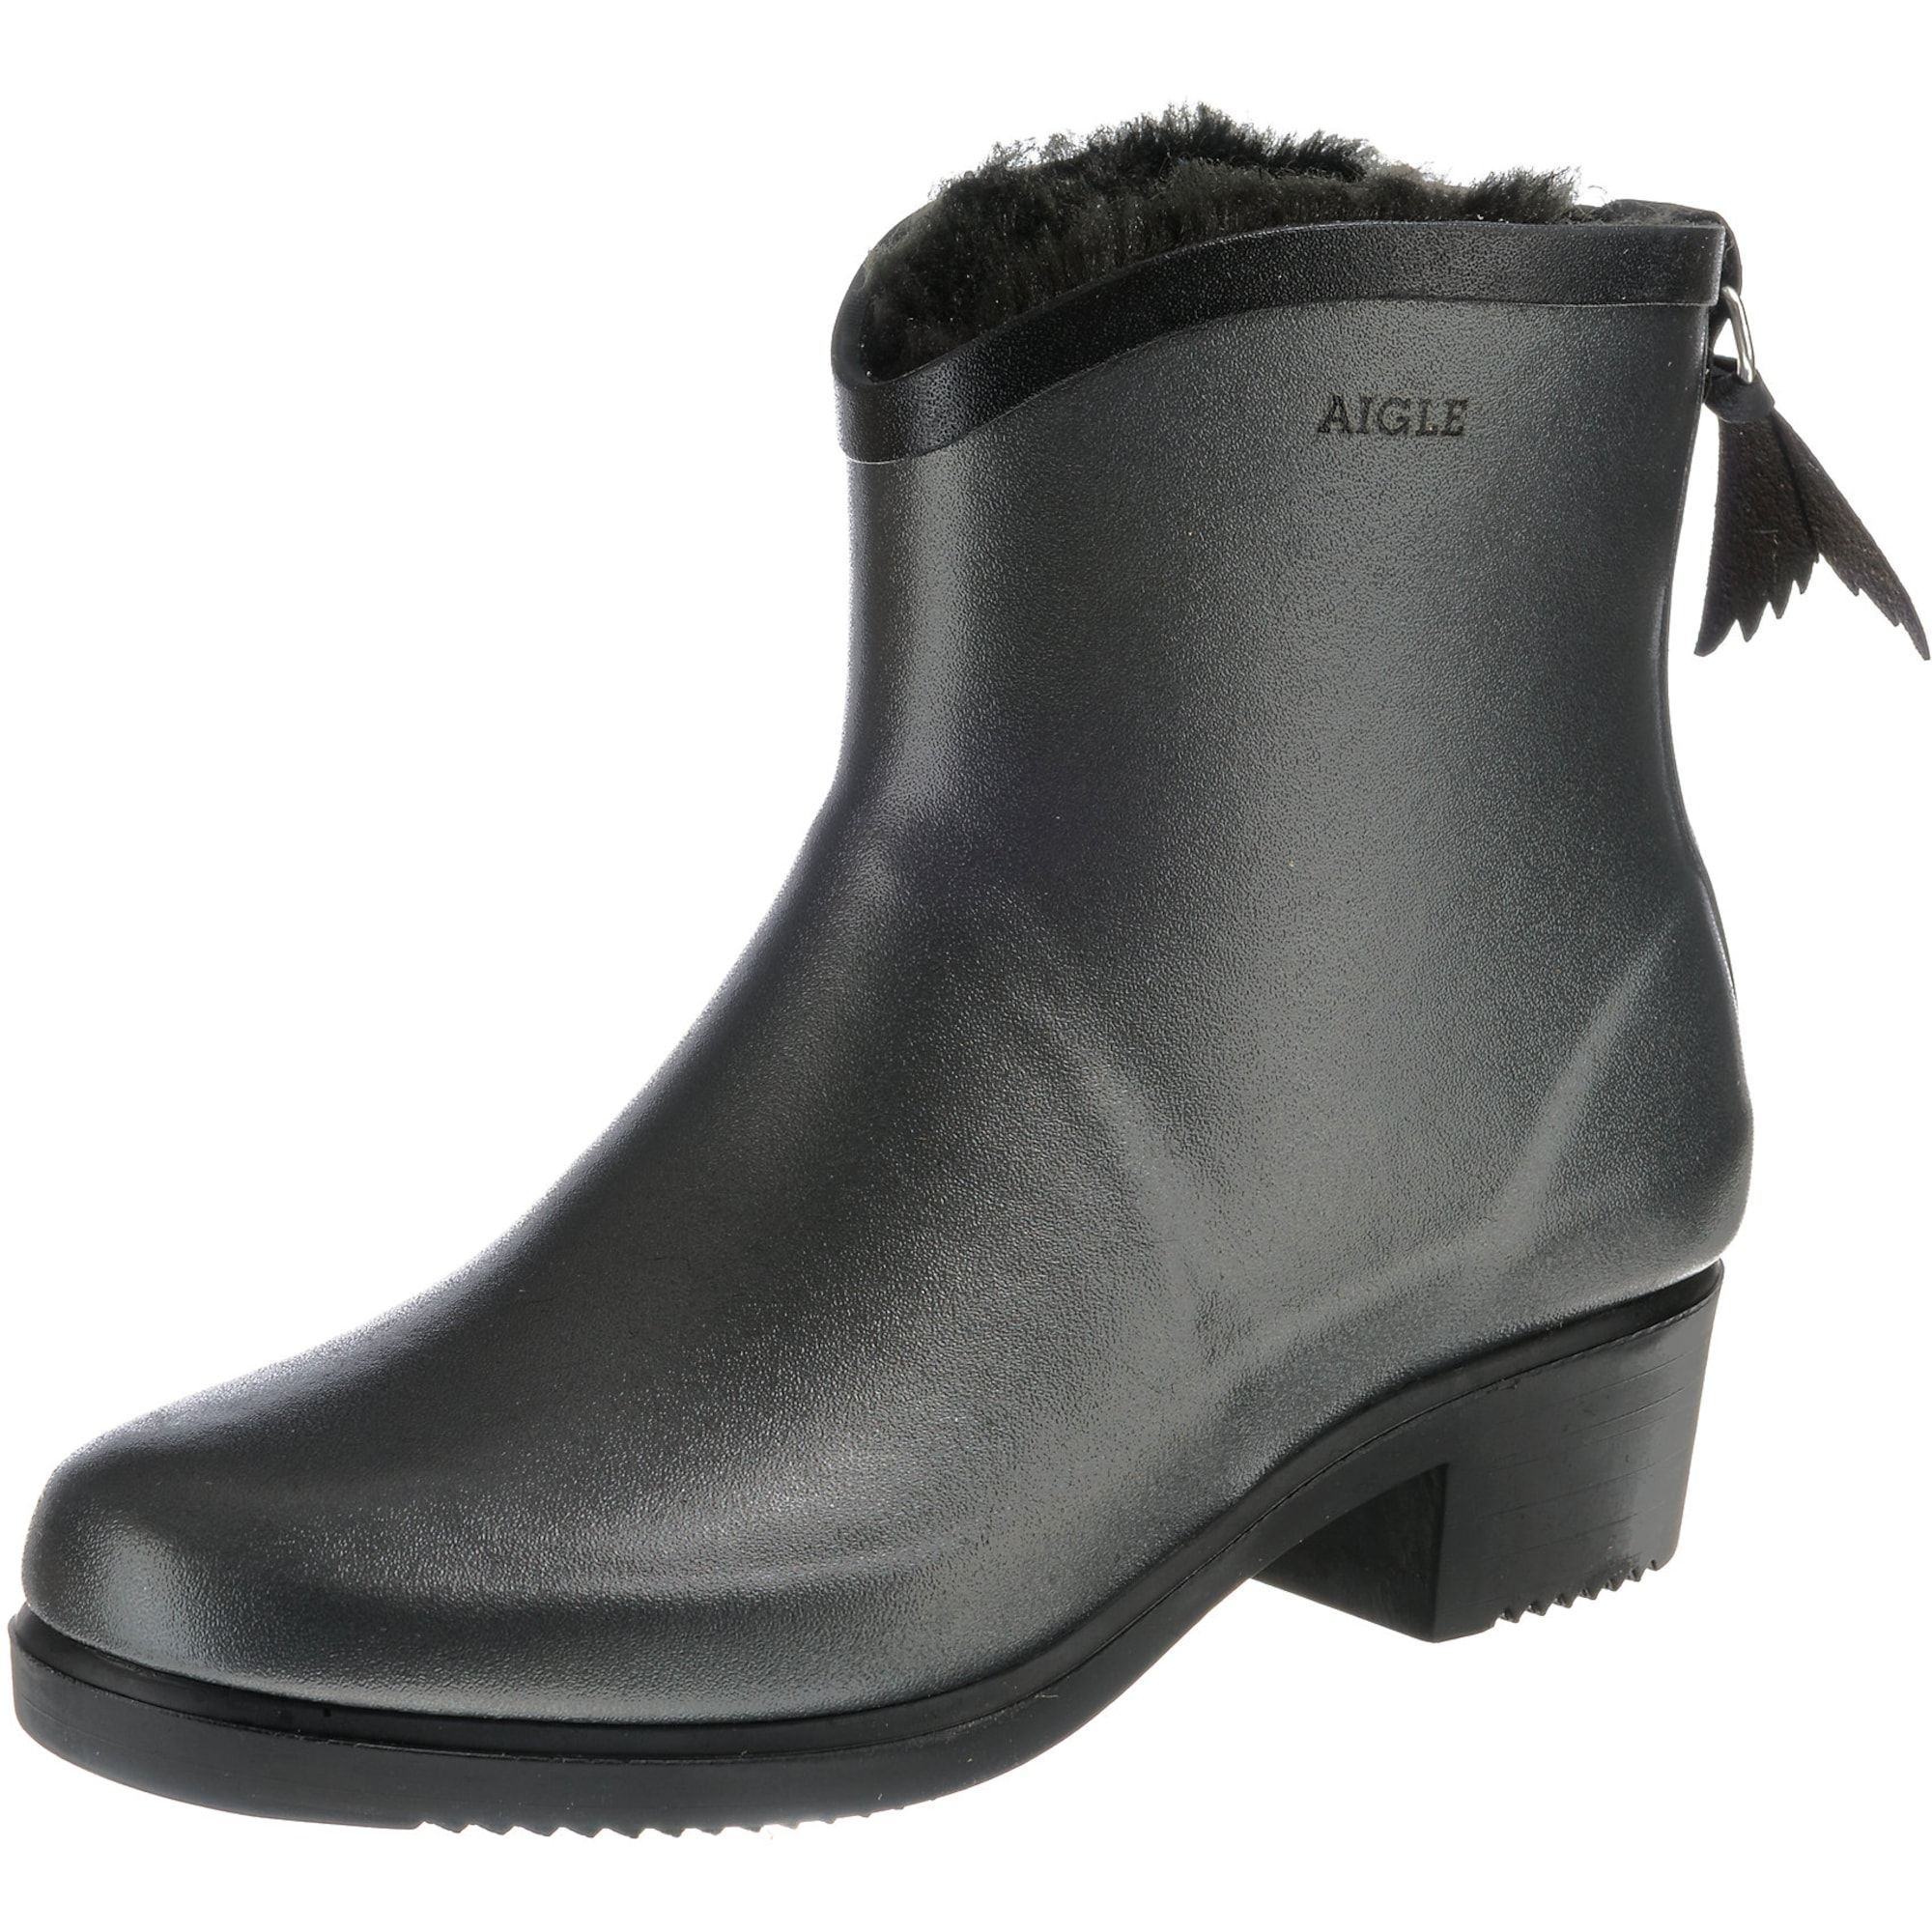 Winterstiefel ´MISS JULIETTE BOTTI FUR´